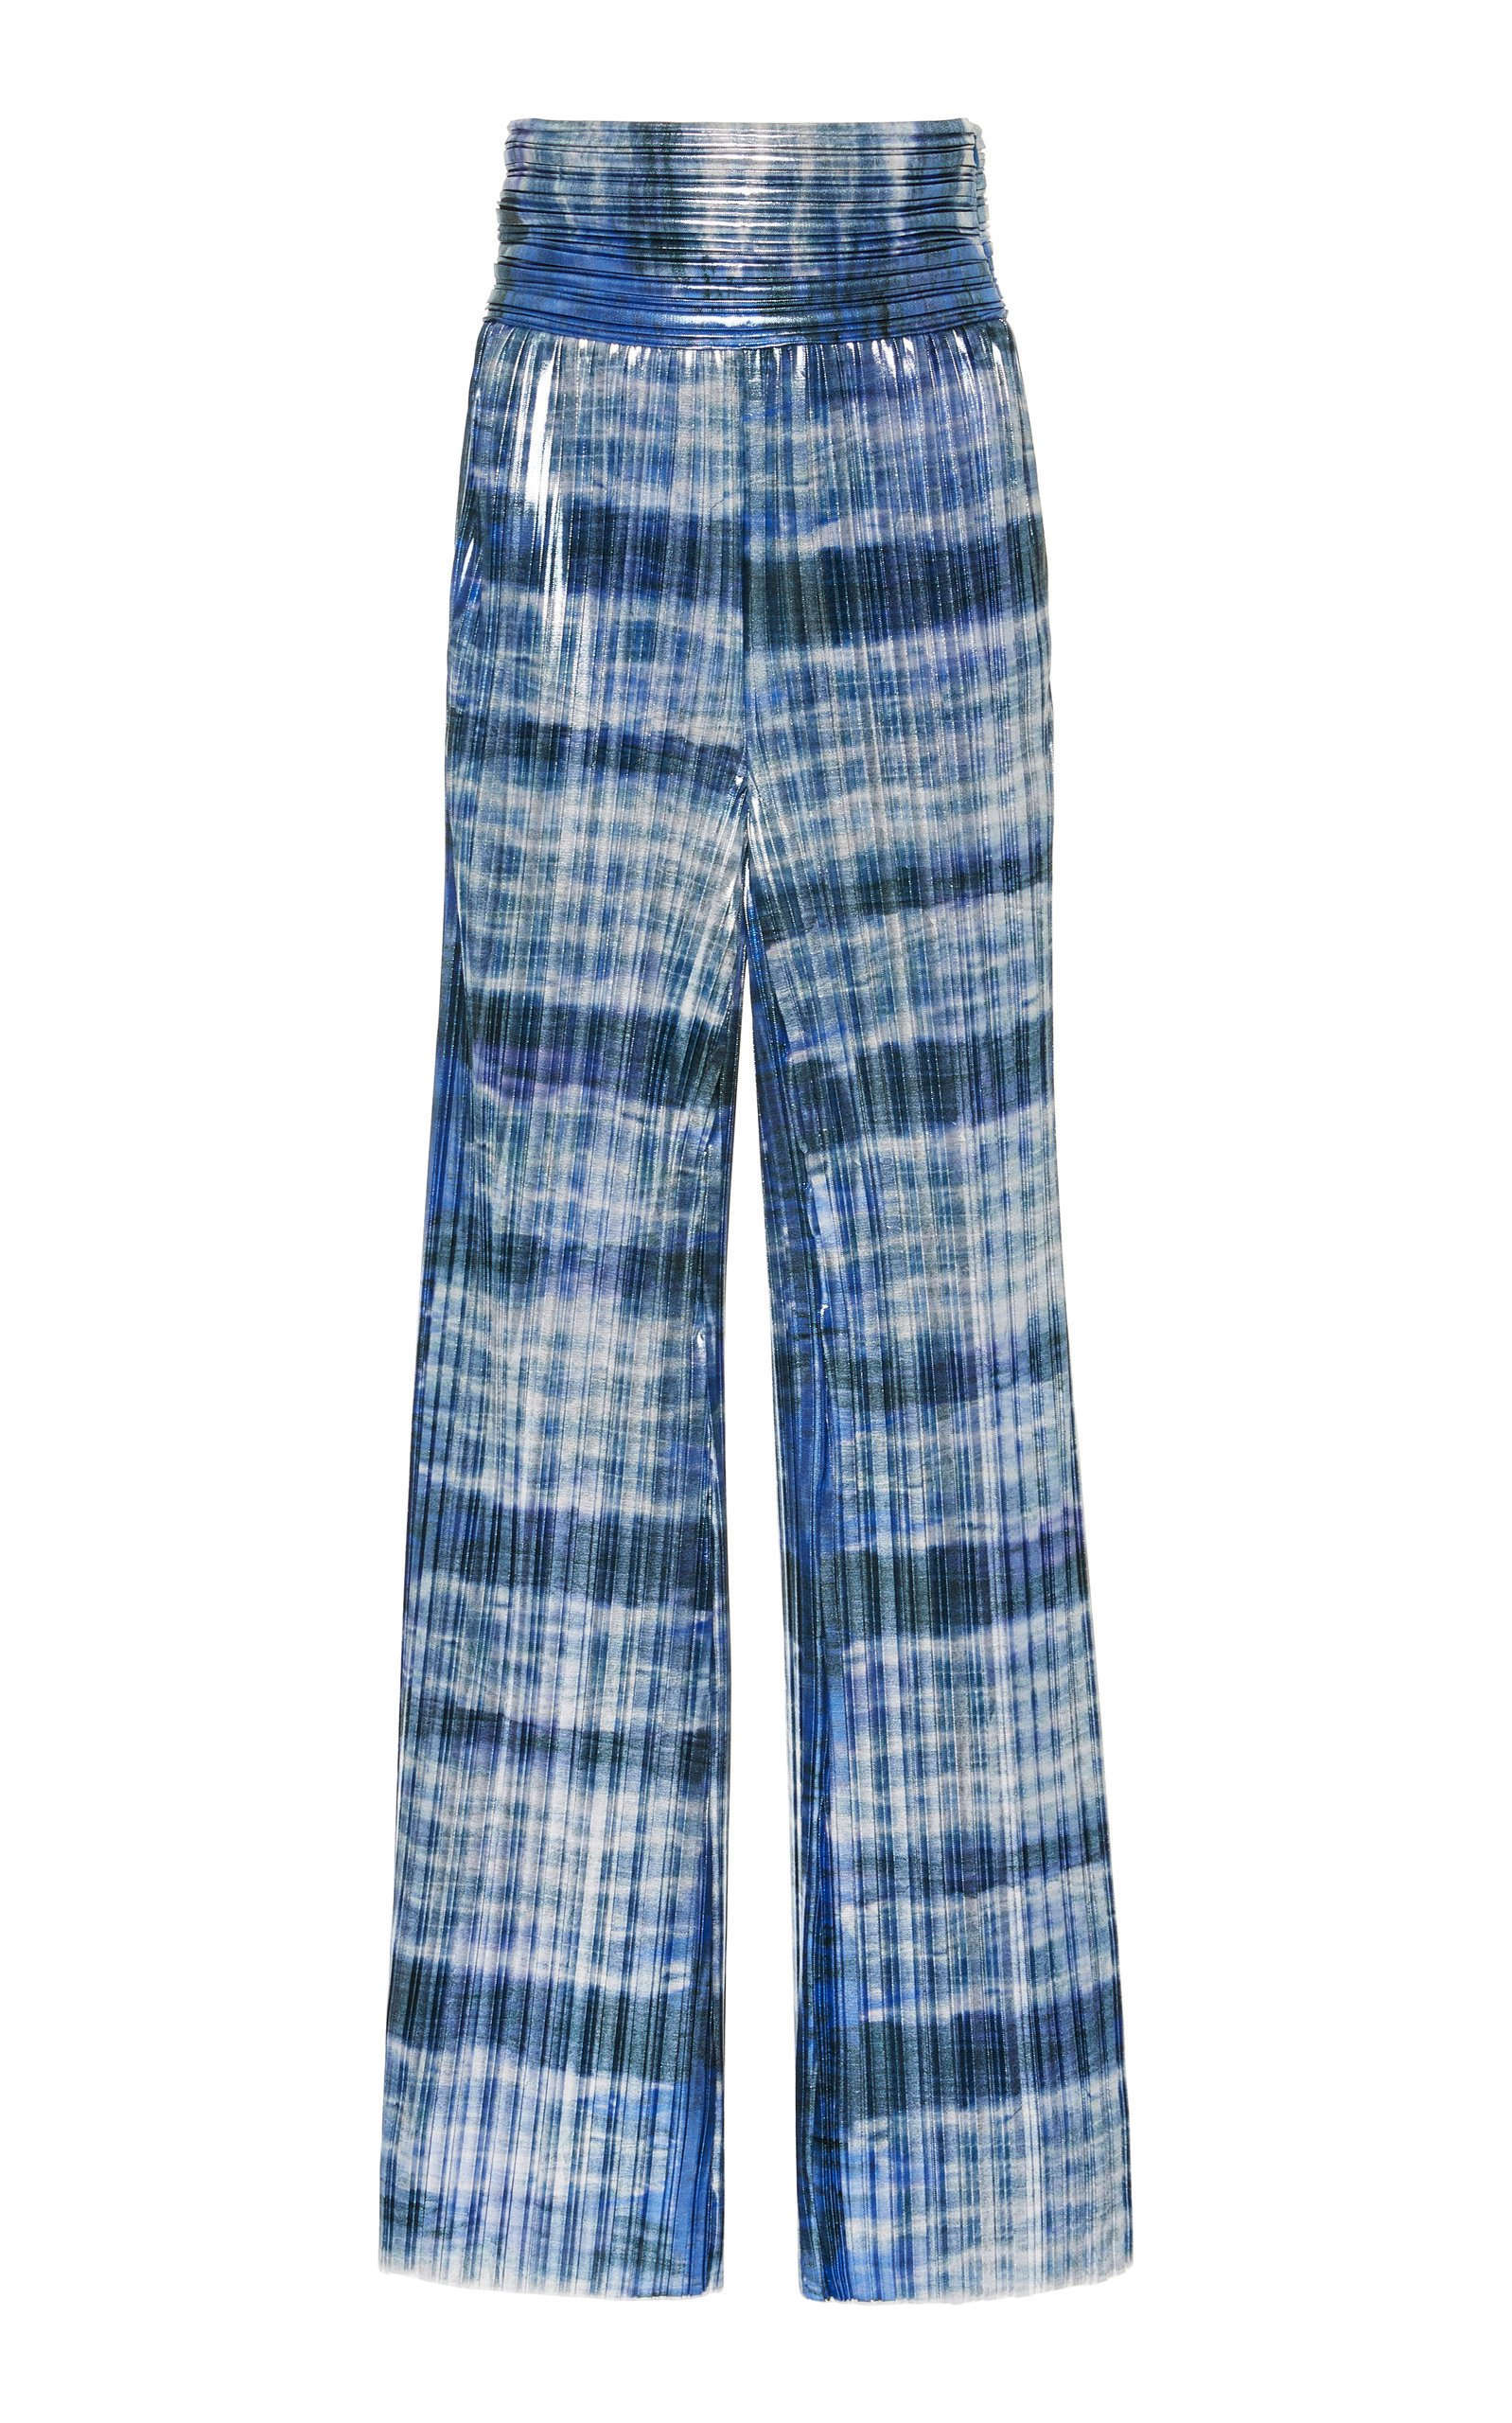 SemSem Patterned Wide-Leg Pants